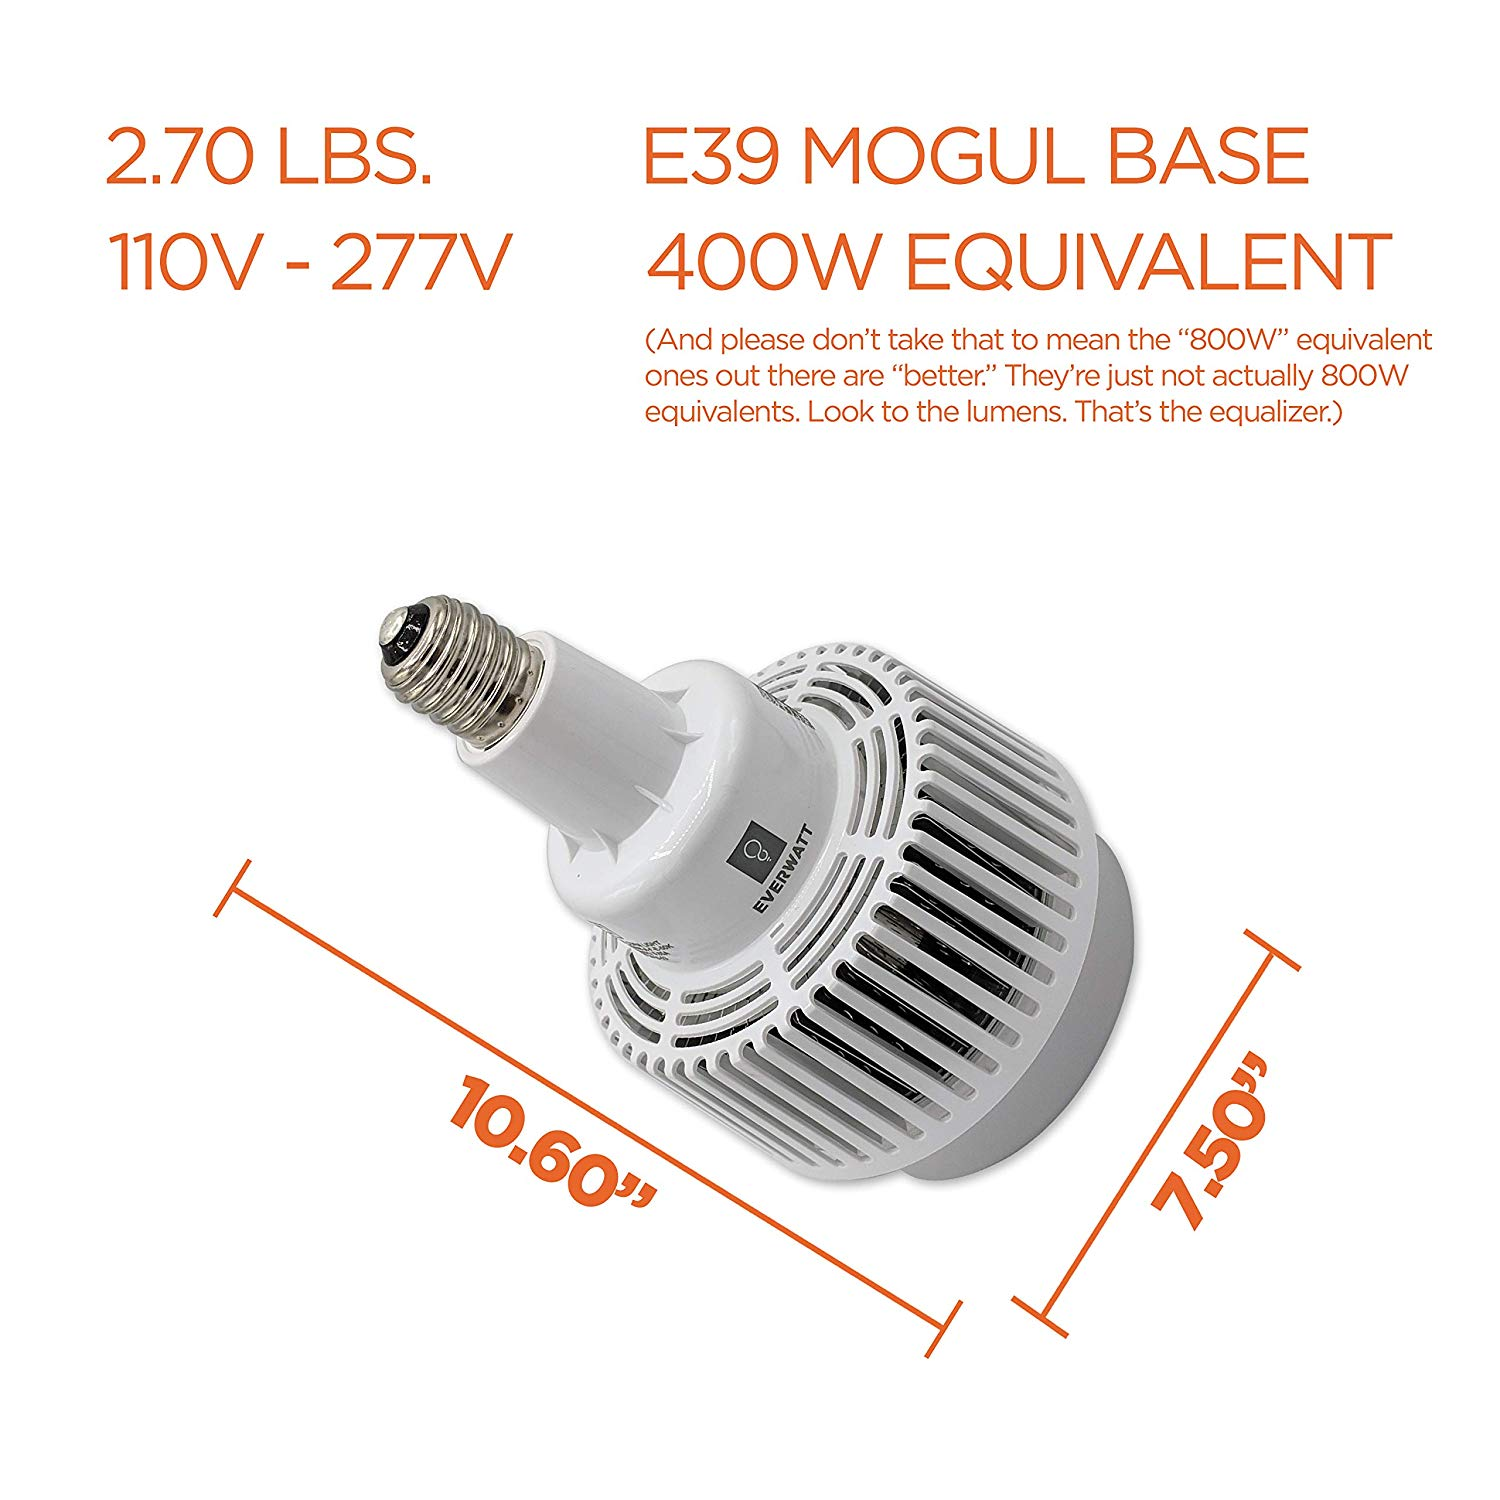 100W LED High Bay Bulb, E39 Mogul, Replacement For 400W